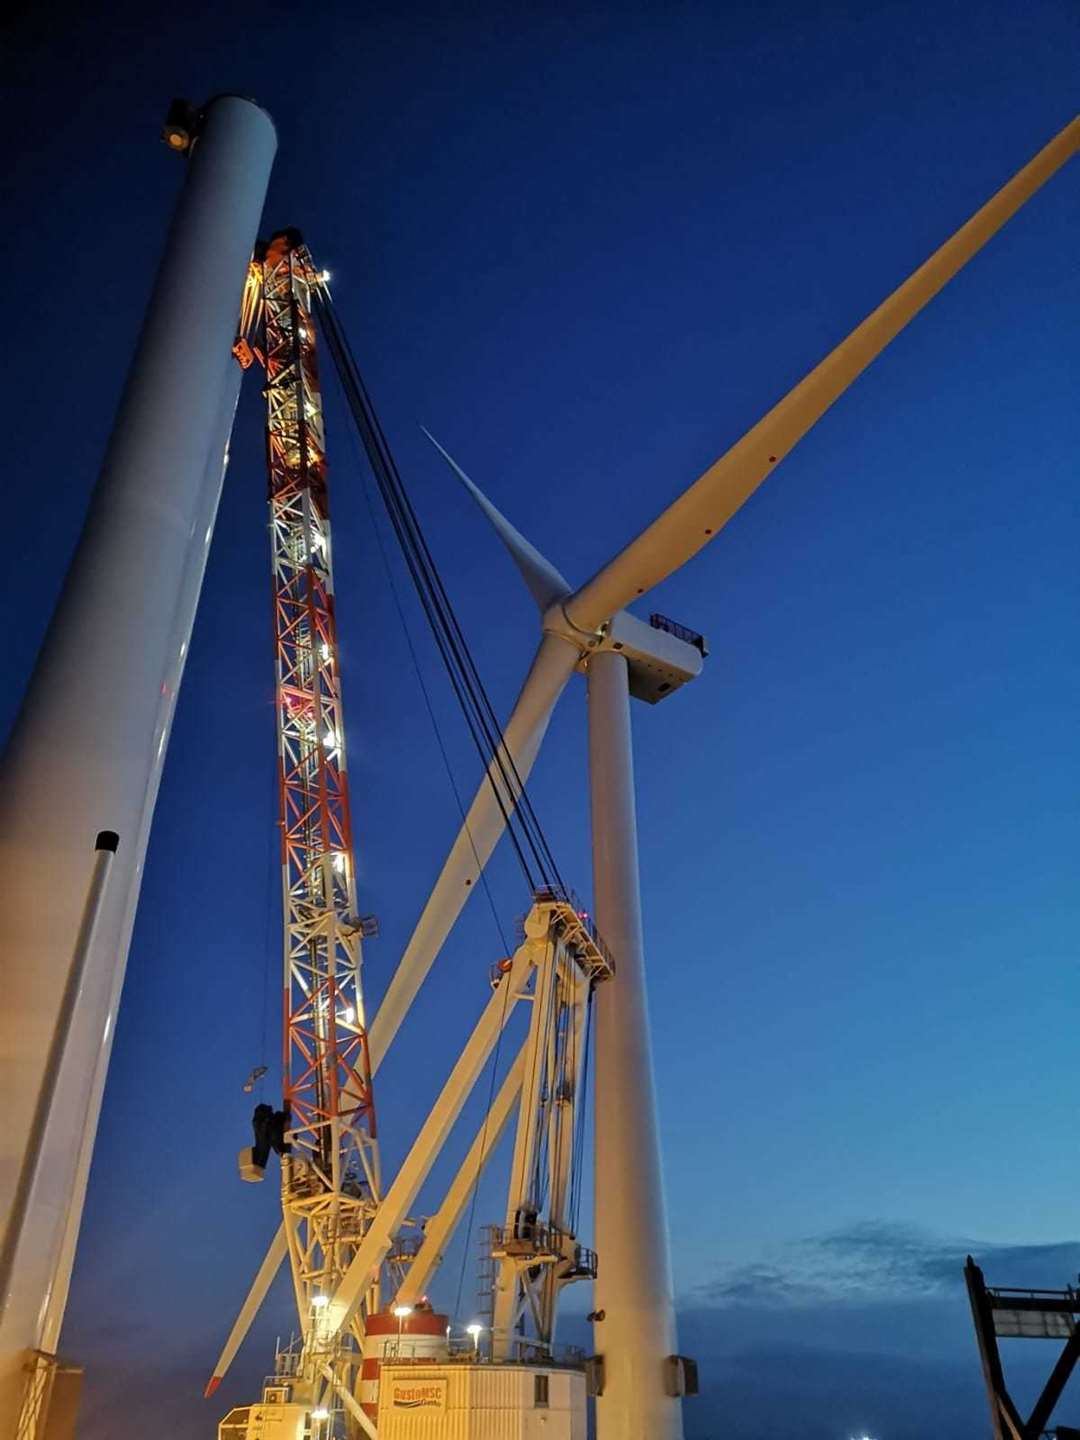 The first turbine is erected at Moray East offshore windfarm, 15 miles from the shore in the Moray Firth.